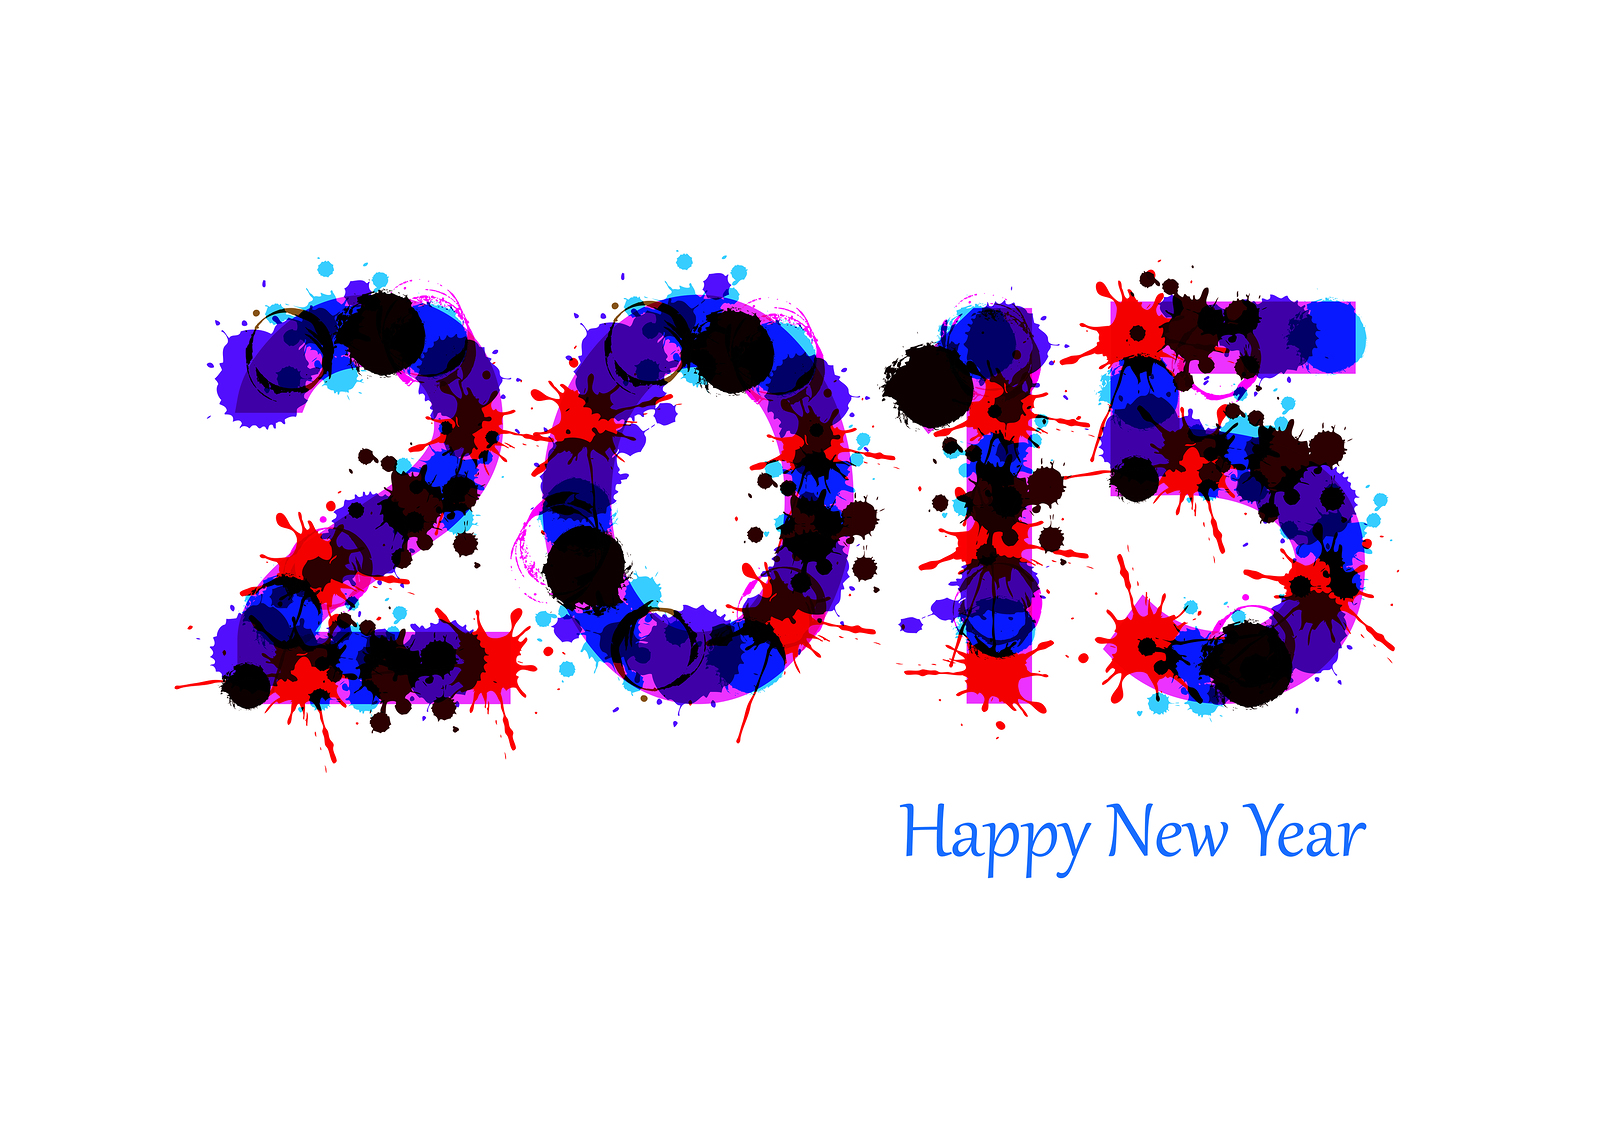 Happy New Year Wallpaper 2015 Computer